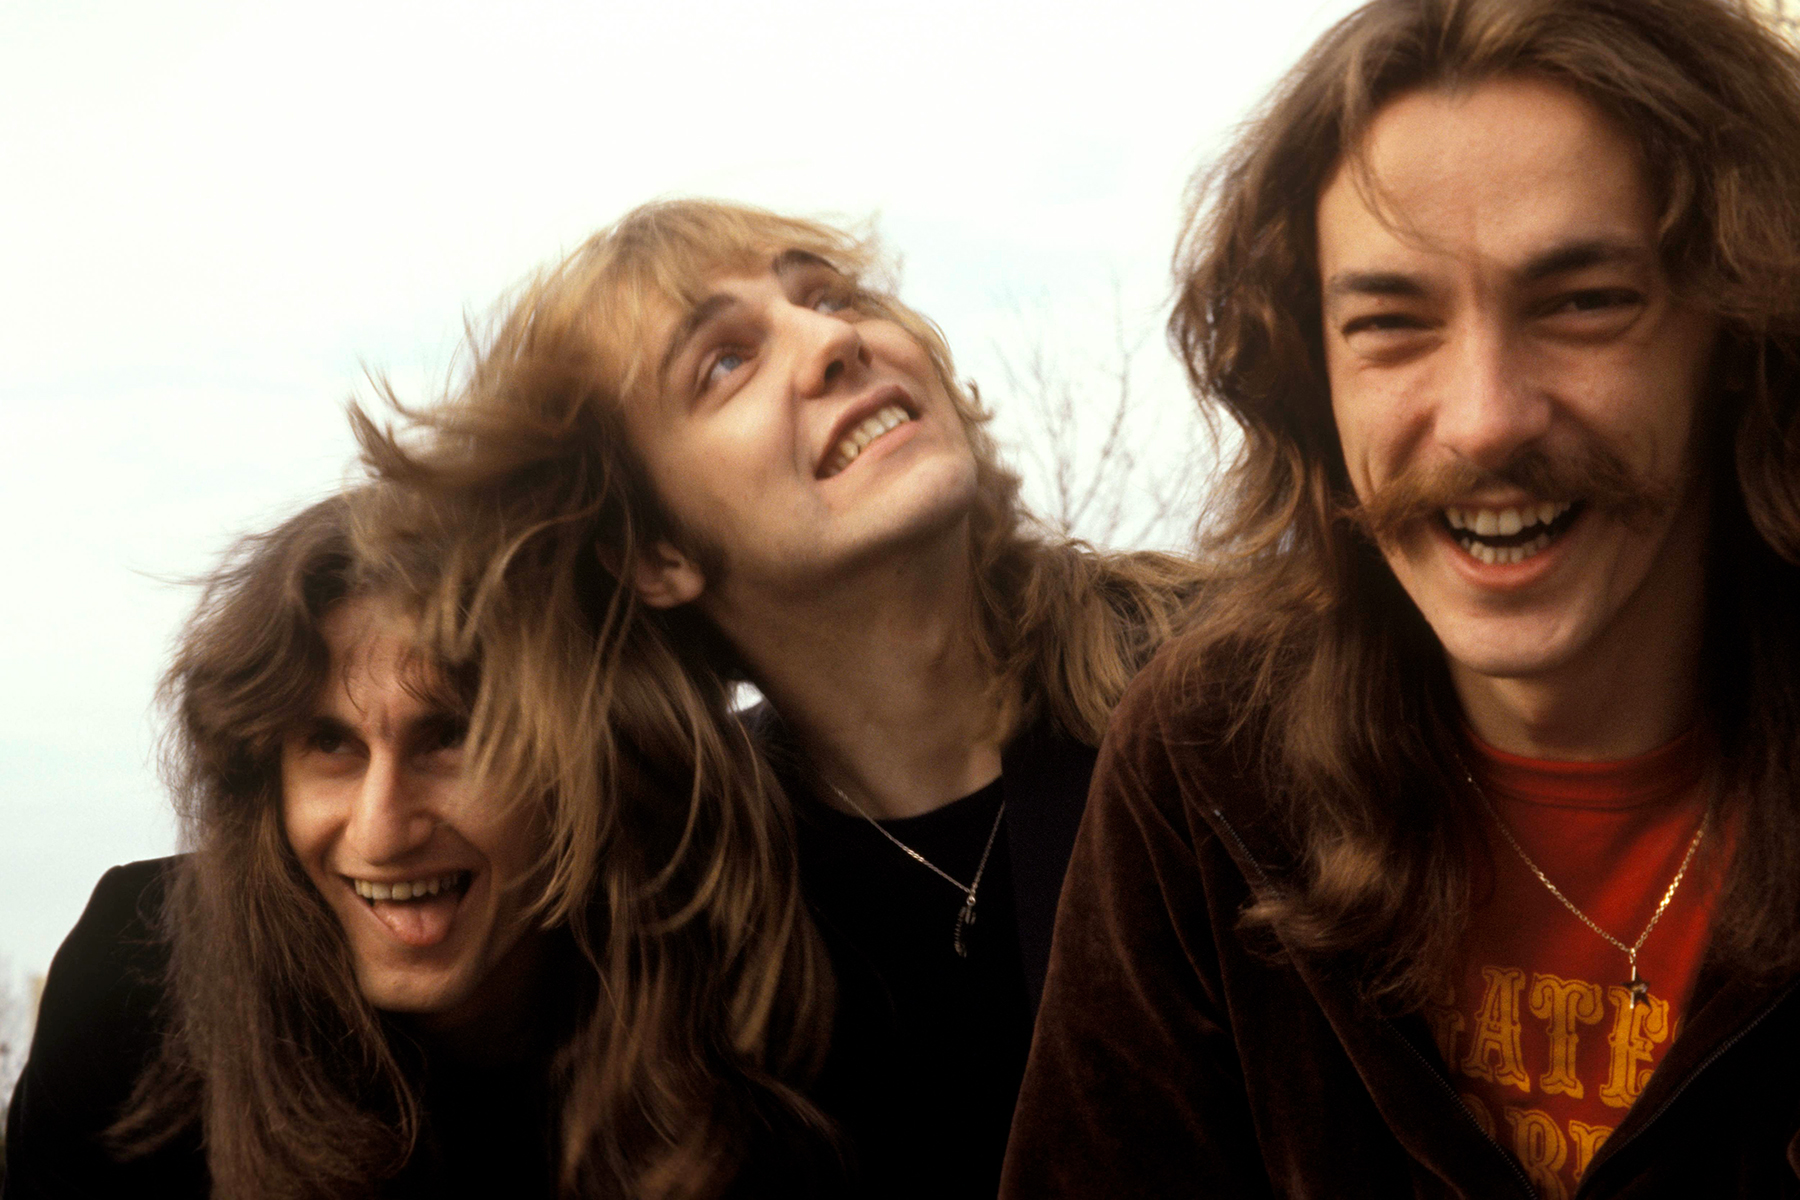 UNITED STATES - DECEMBER 01: Photo of Alex LIFESON and RUSH and Geddy LEE and Neil PEART; Geddy Lee, Alex Lifeson, Neil Peart - posed, group shot, (Photo by Fin Costello/Redferns)